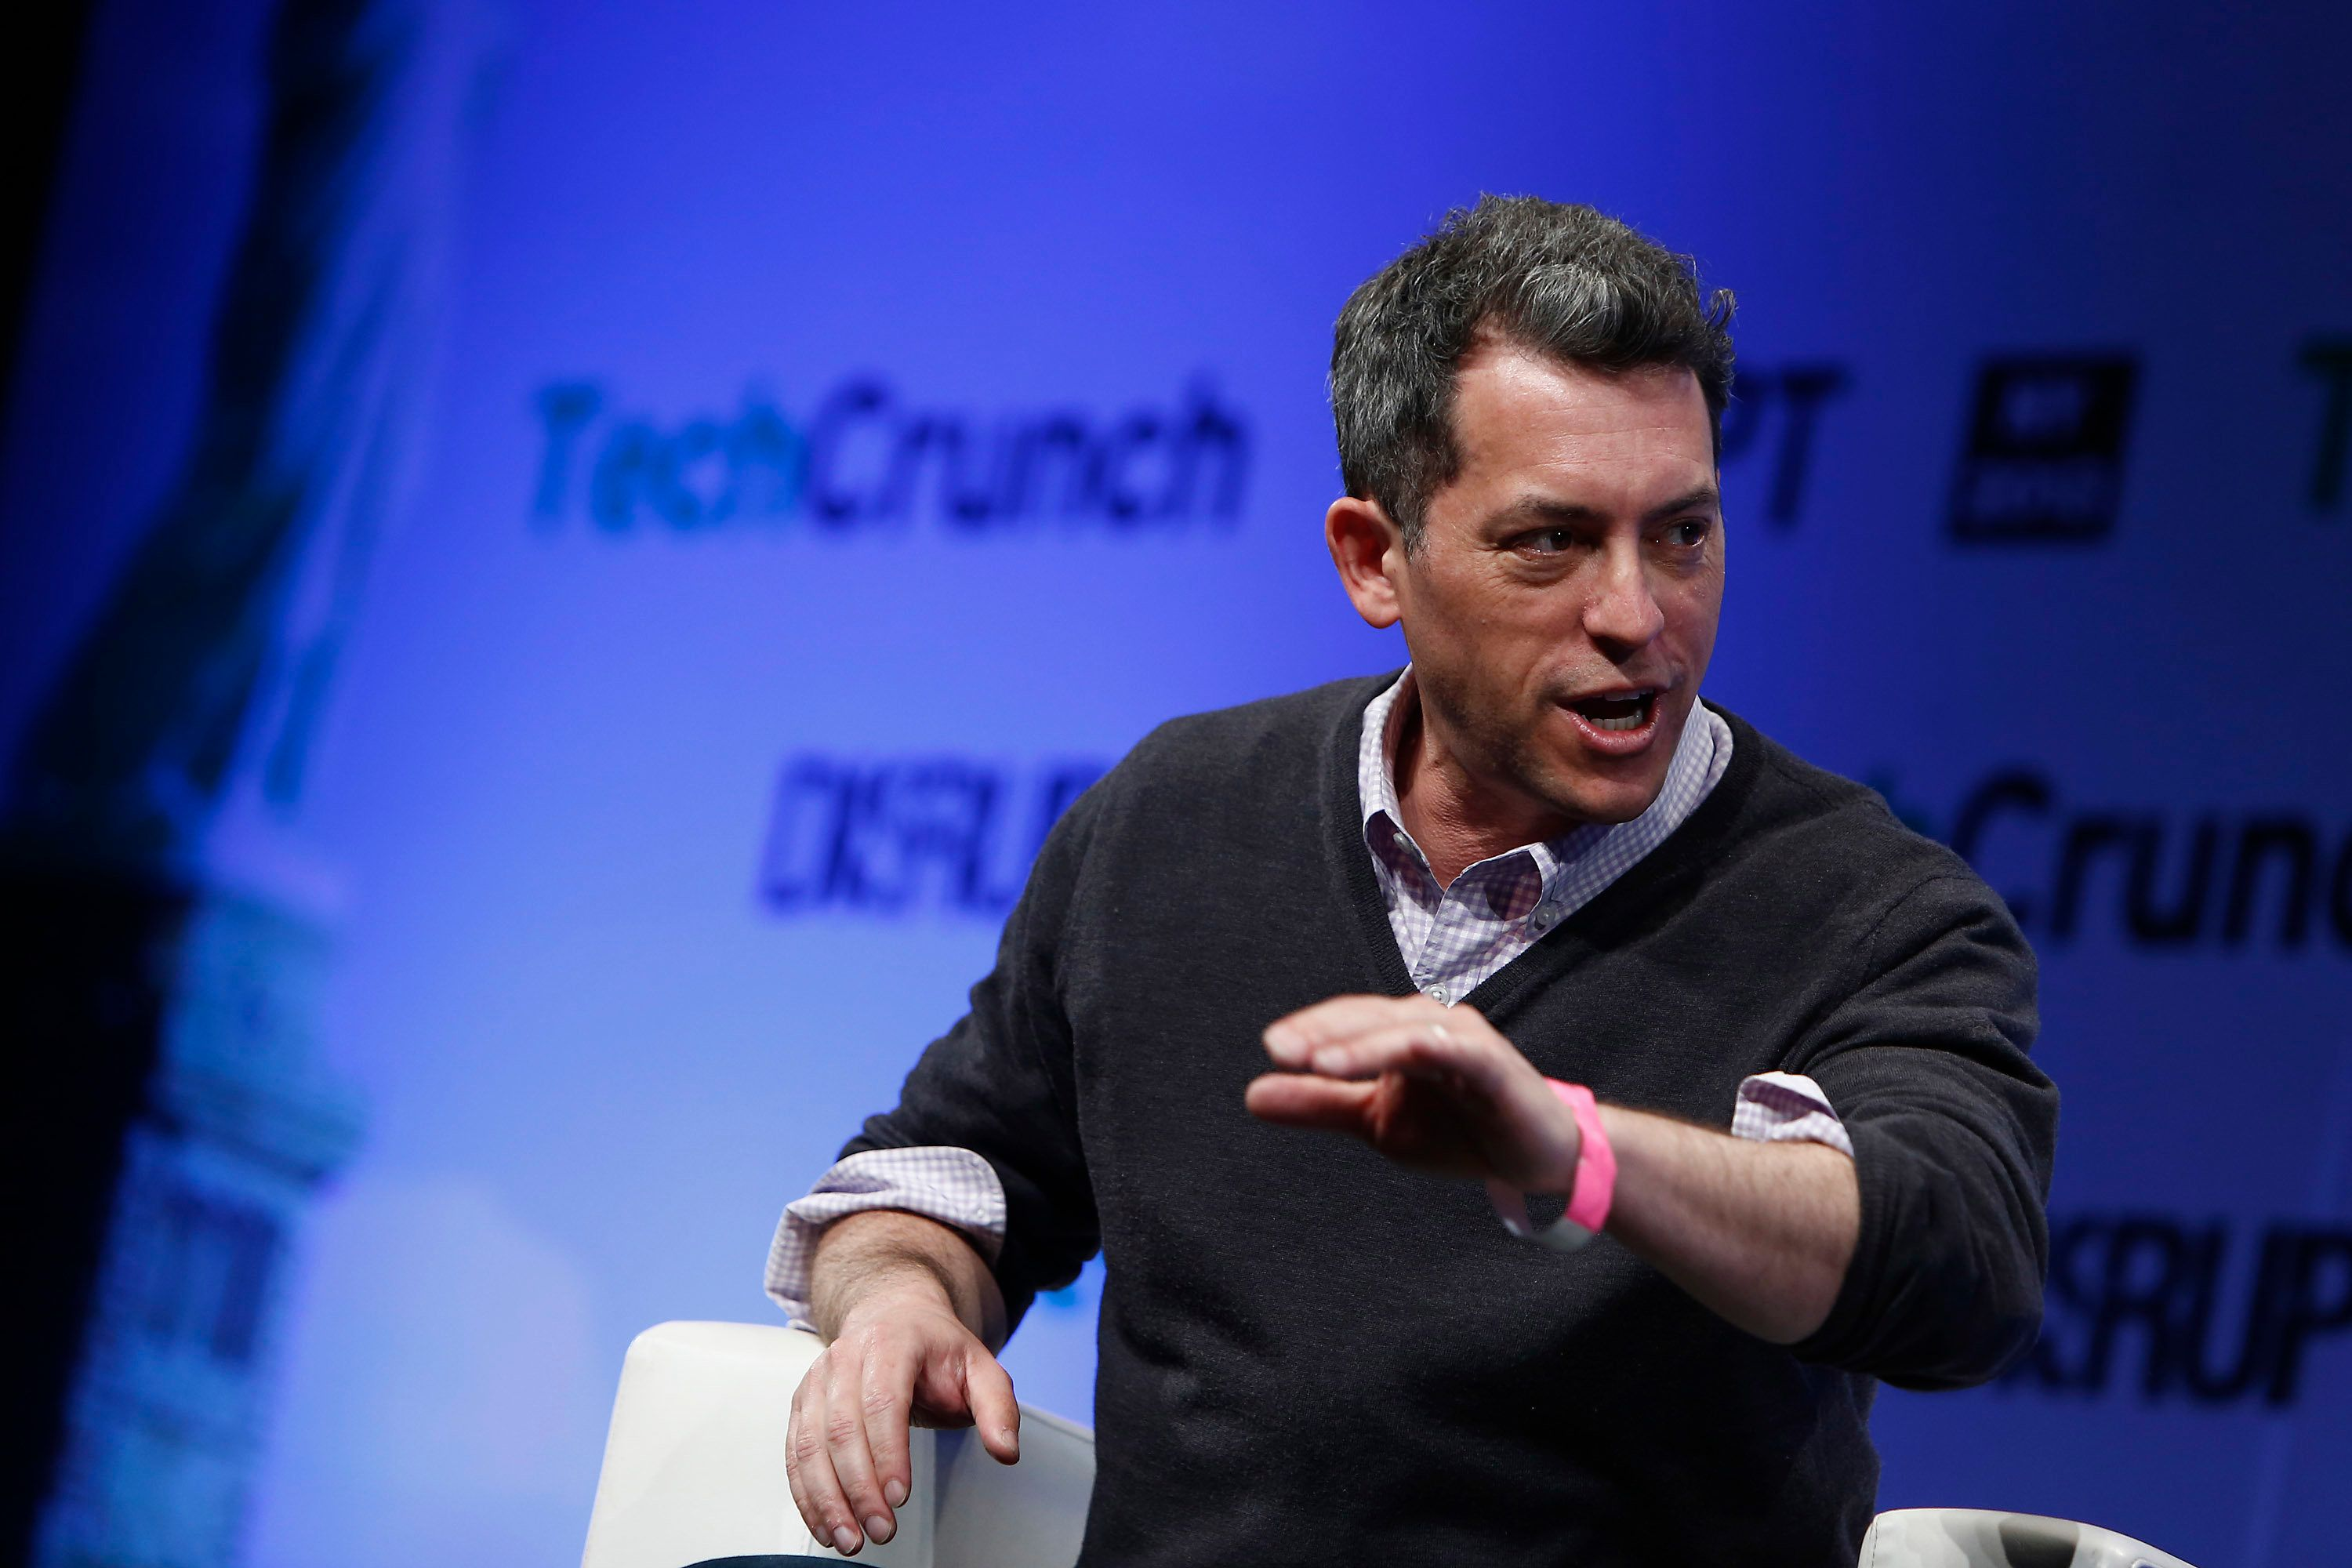 Jim Bankoff is the founder and CEO of Vox Media.